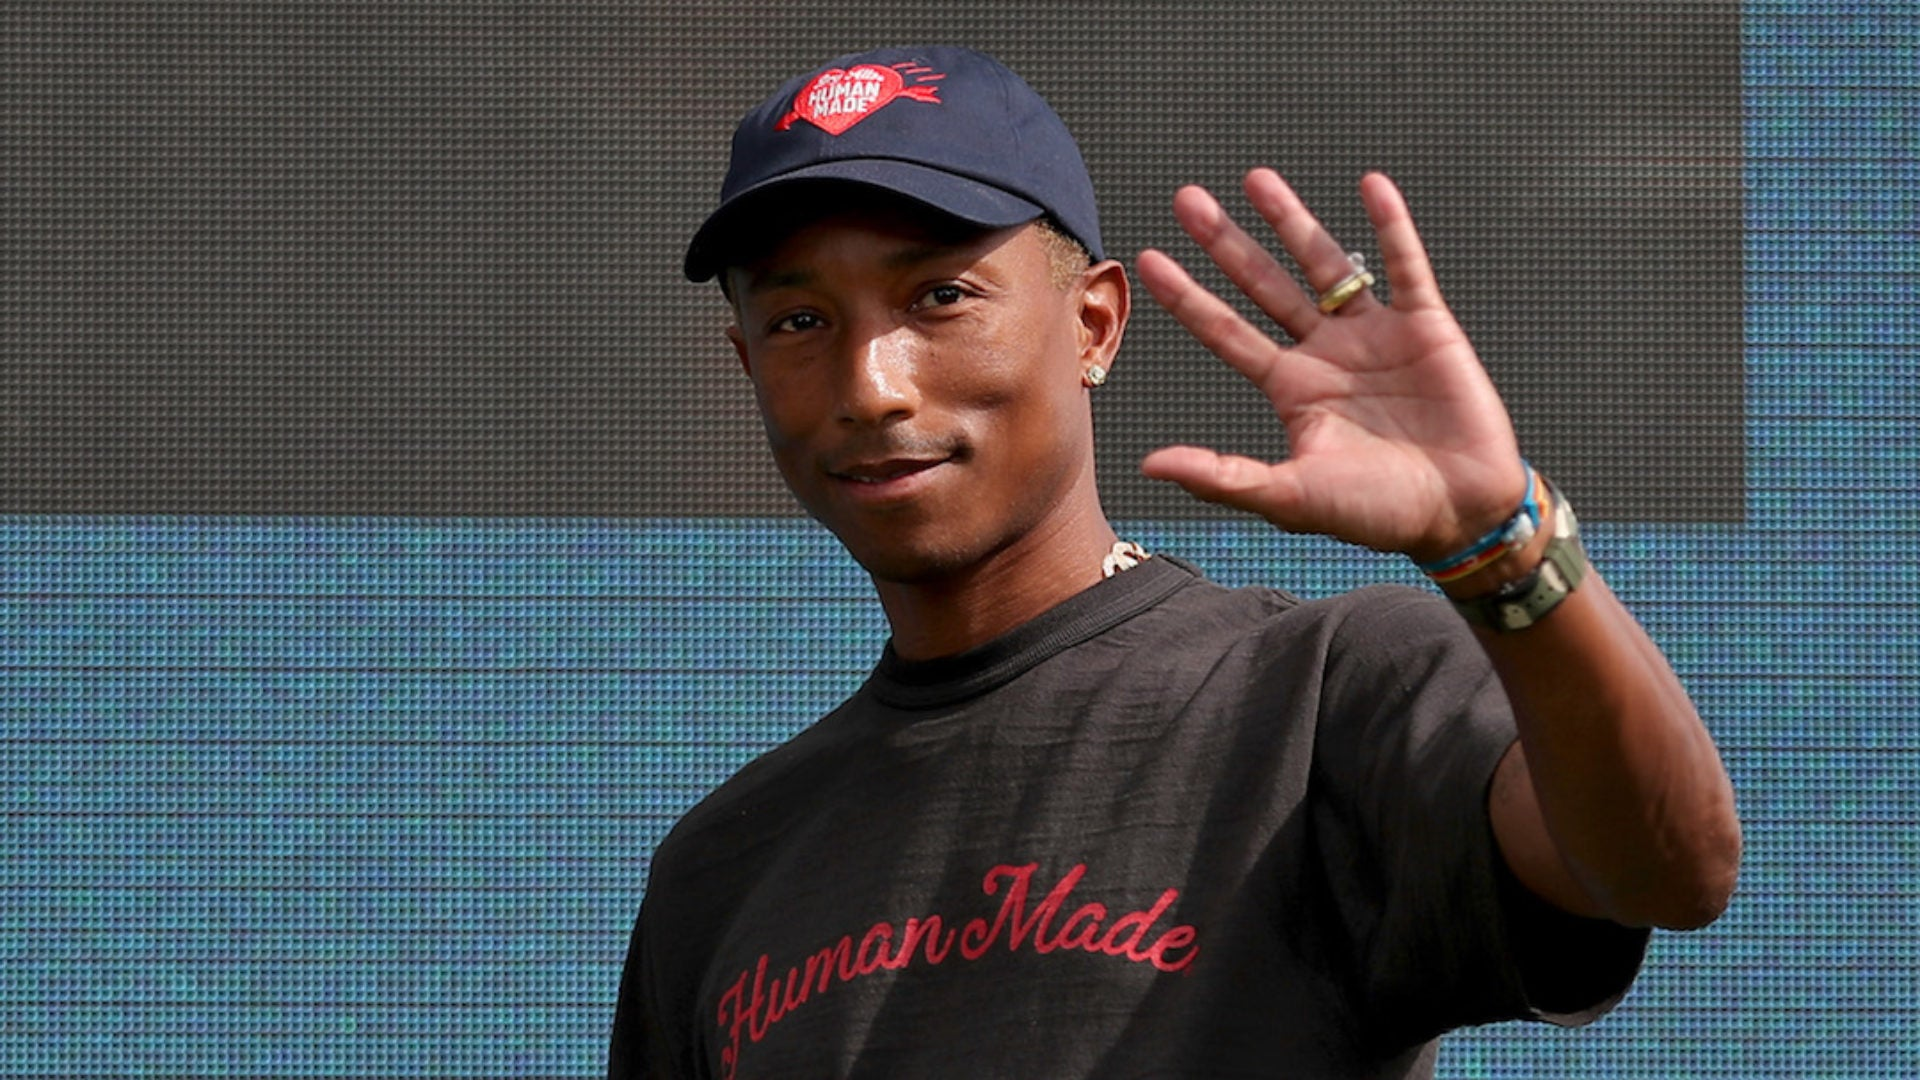 Pharrell Says Response To 'Blurred Lines' Made Him Realize 'We Live In A Chauvinist Culture'